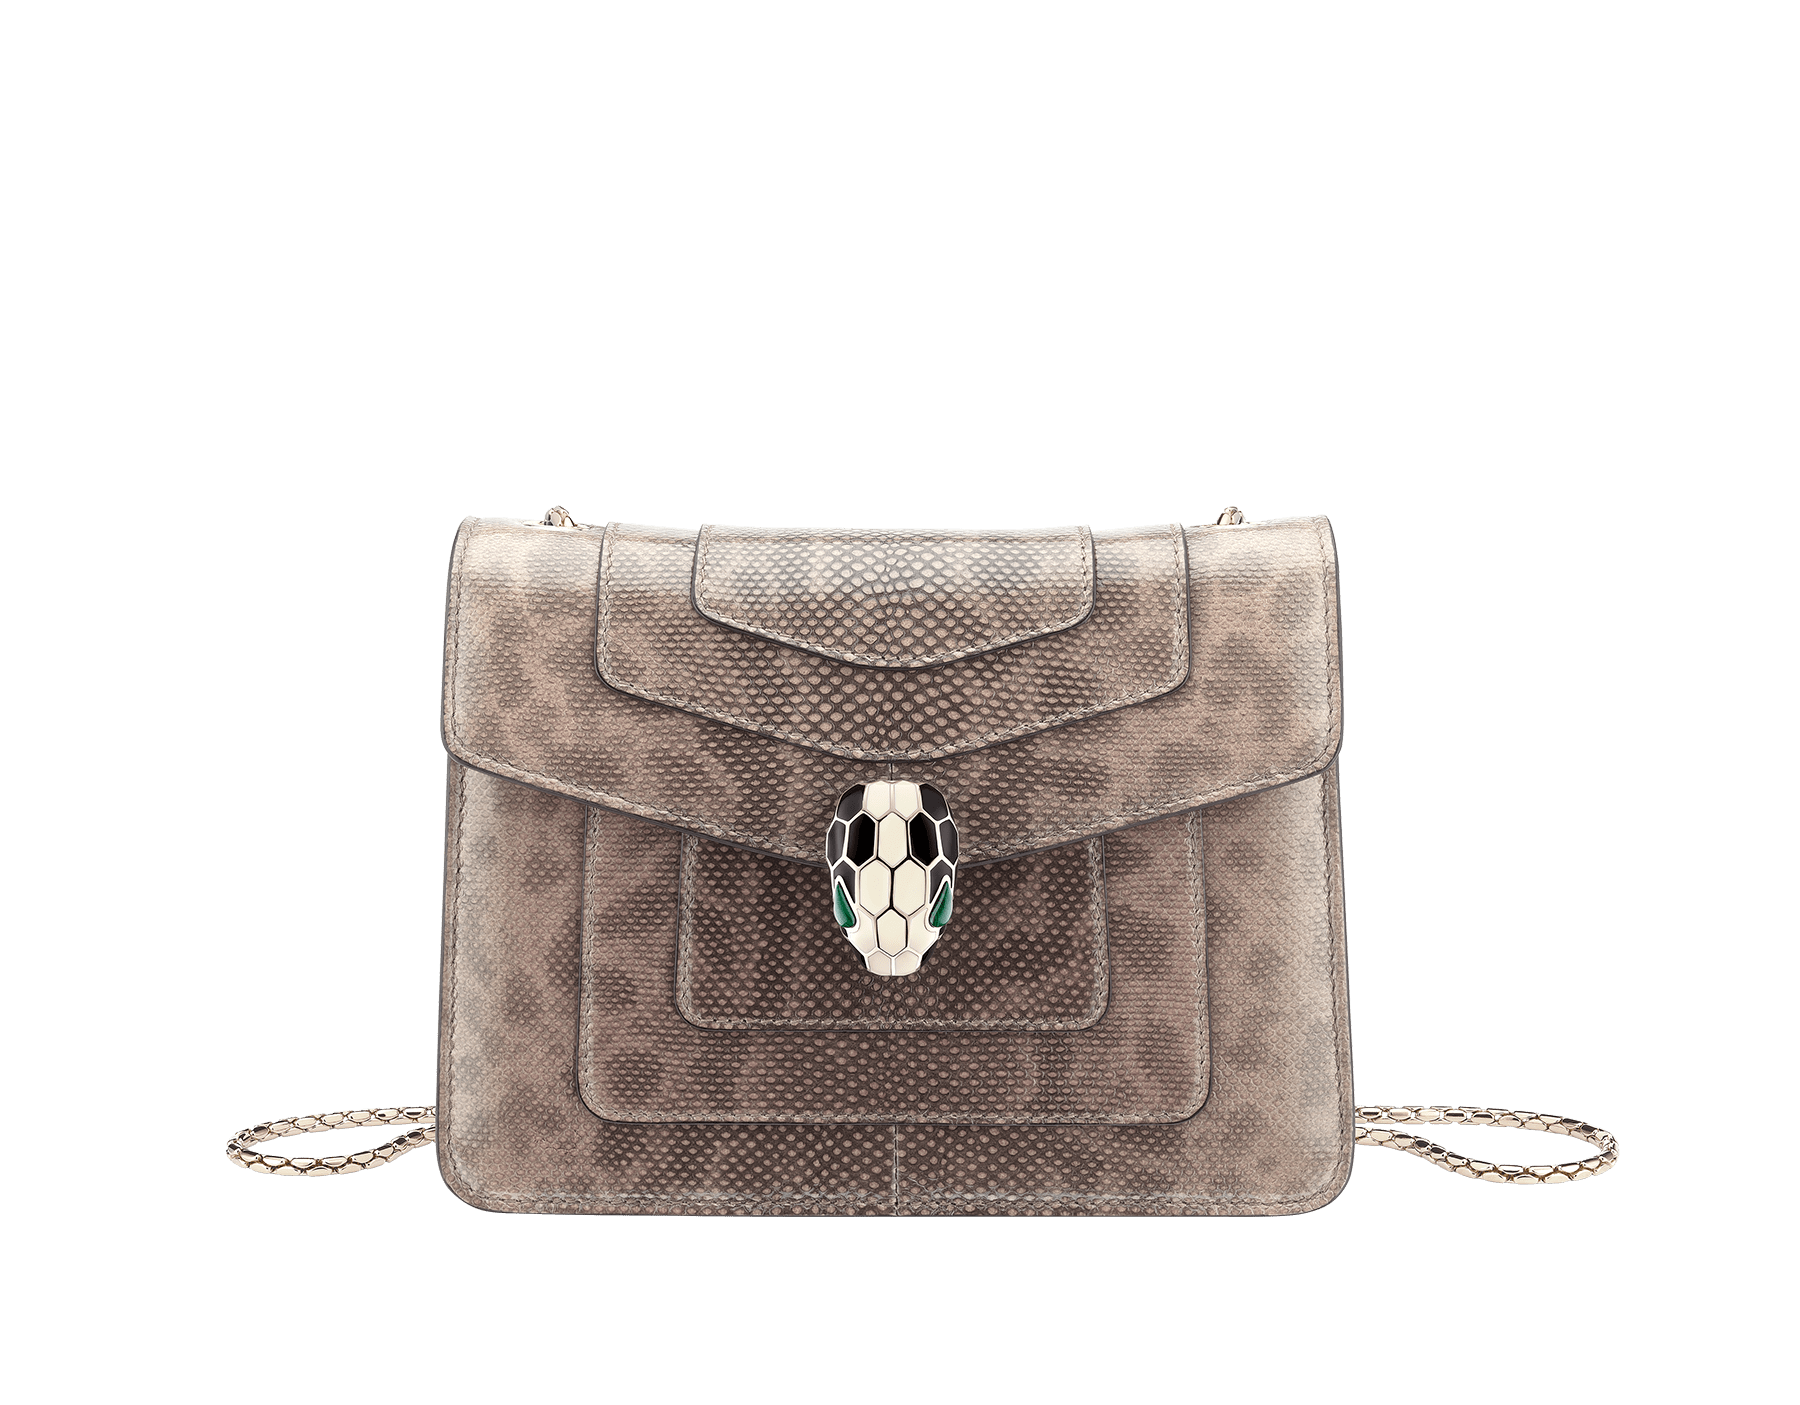 """""""Serpenti Forever"""" crossbody bag in mint shiny karung skin. Iconic snakehead closure in light gold plated brass enriched with black and white enamel, and green malachite eyes. 422-SK image 1"""